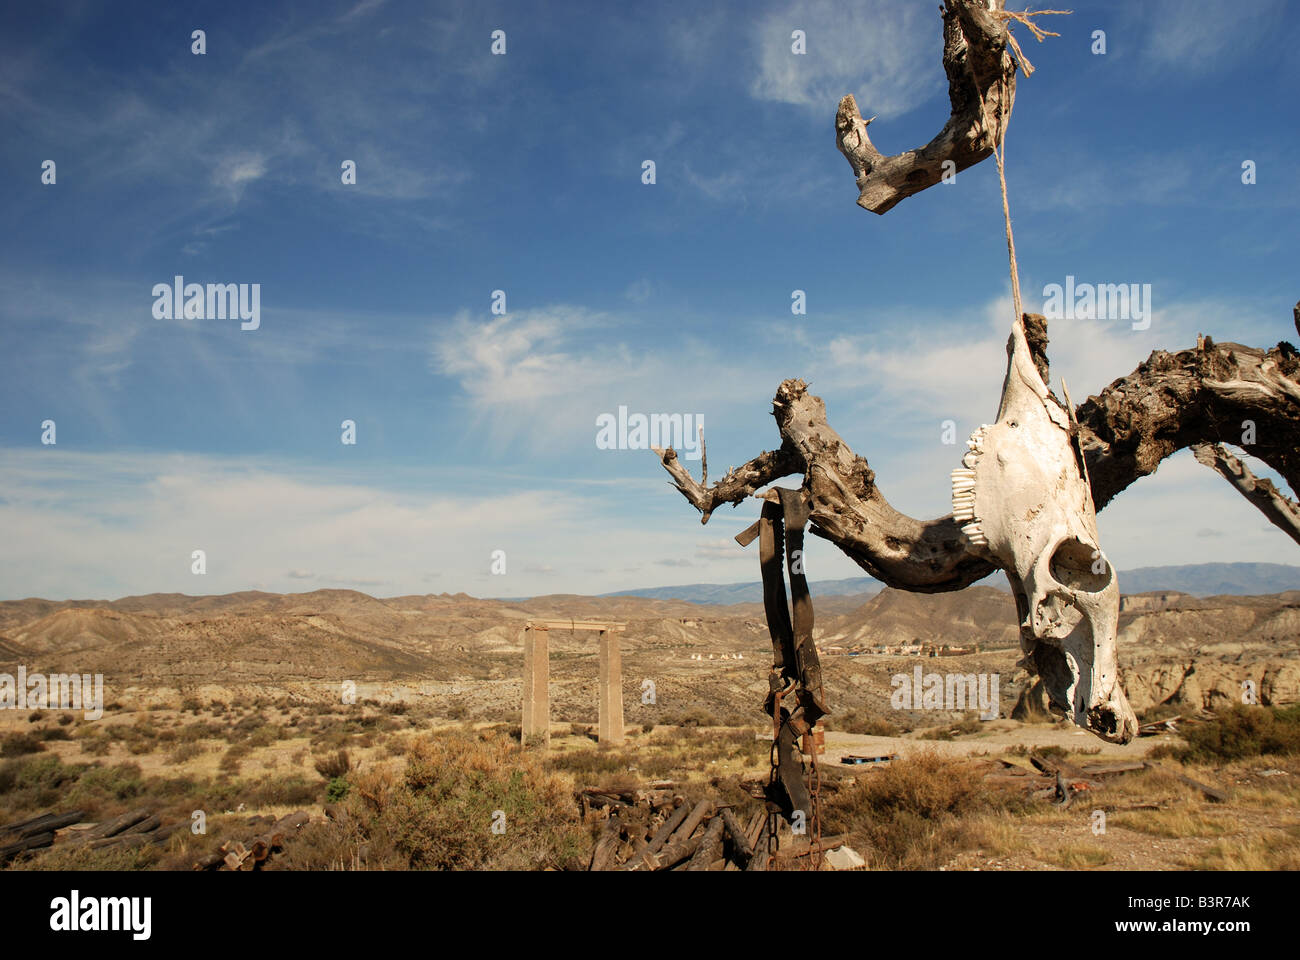 Parched tree in the desert landscape - Stock Image